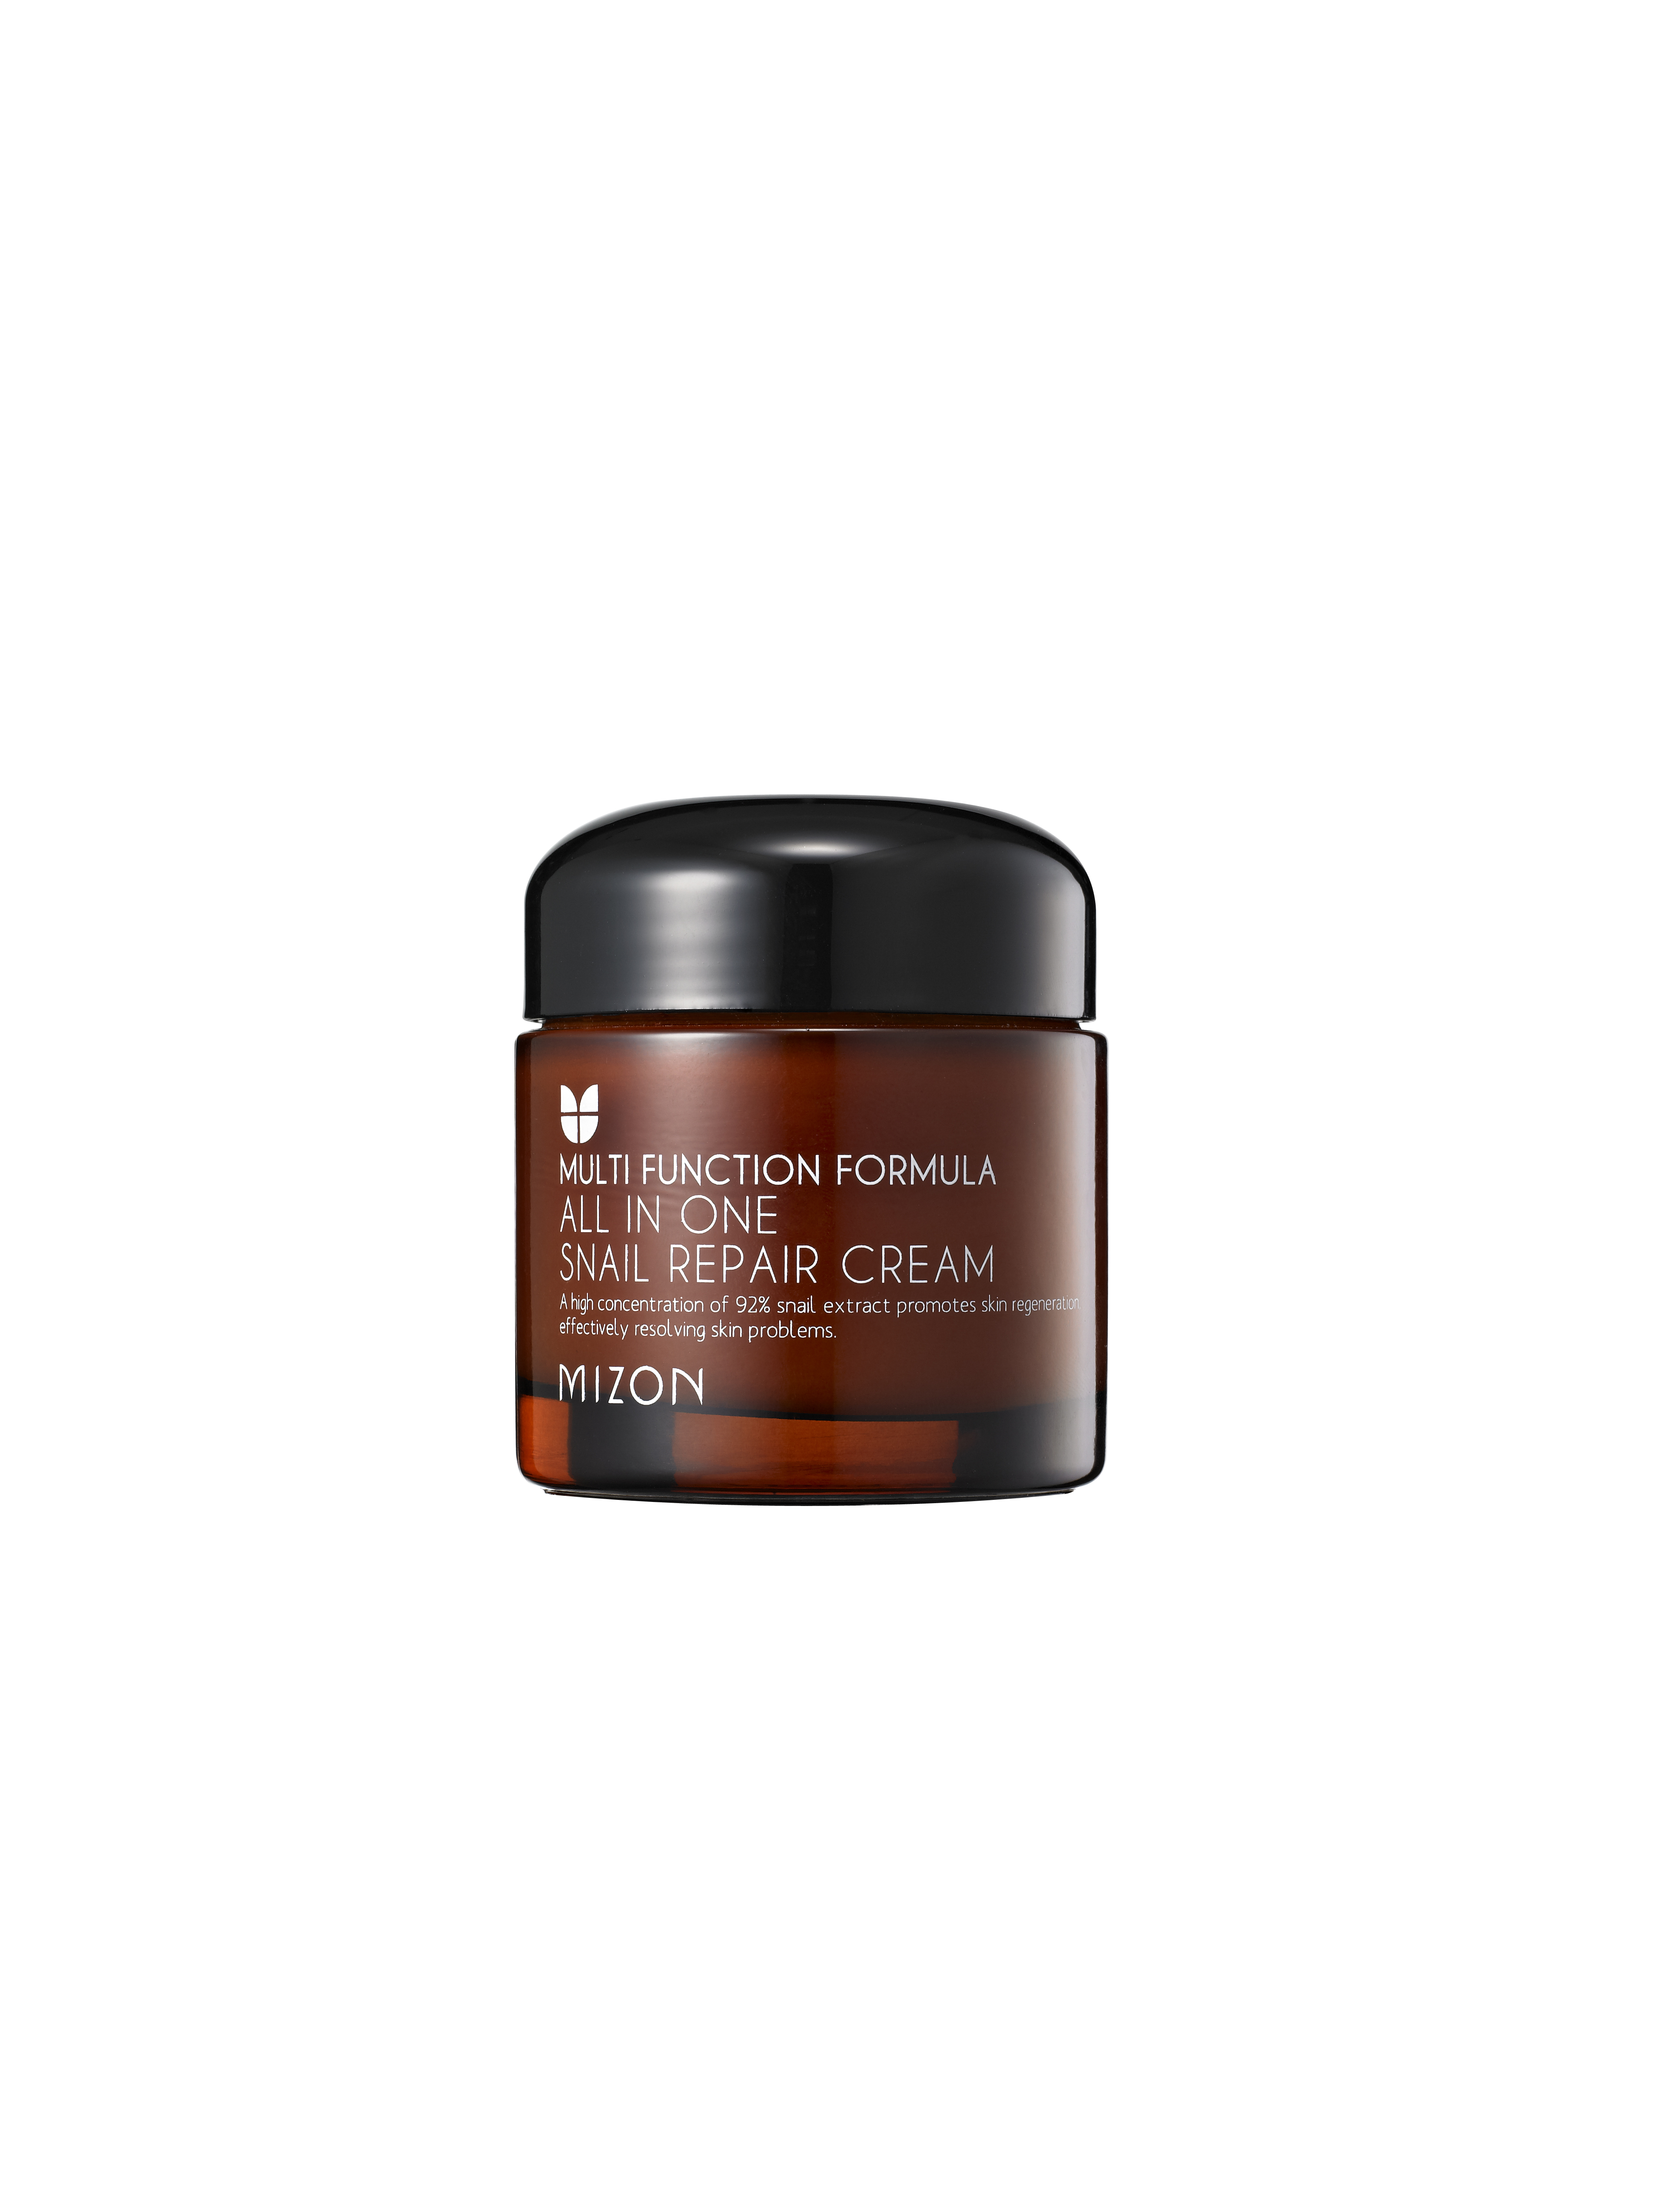 All In One Snail Repair Cream Mizon Blacksnail 75ml It Contains 92 Of Mucous Ultrifiltrate Ingredient And Comes A Pack